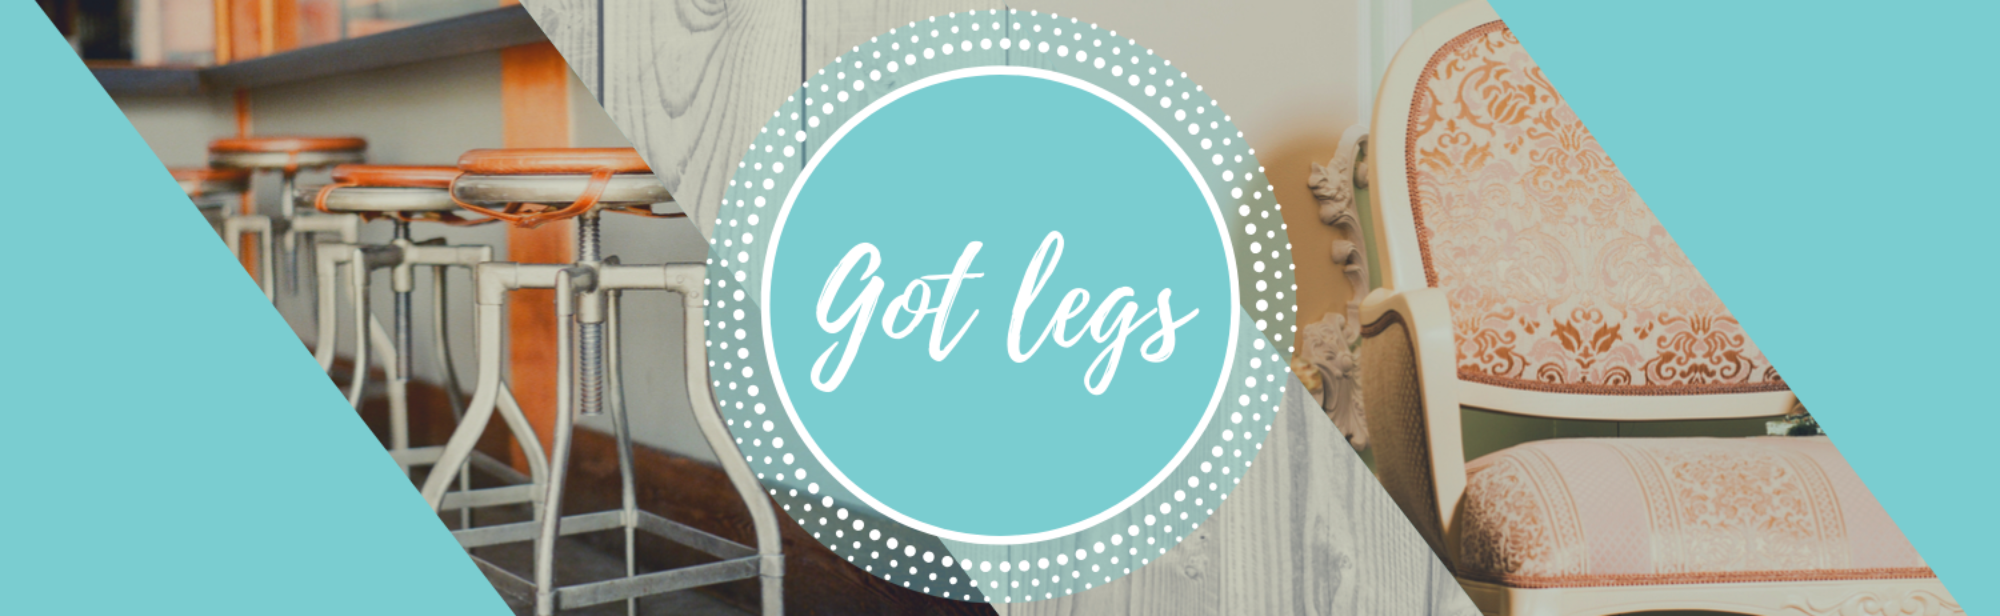 Got Legs Furniture & Décor